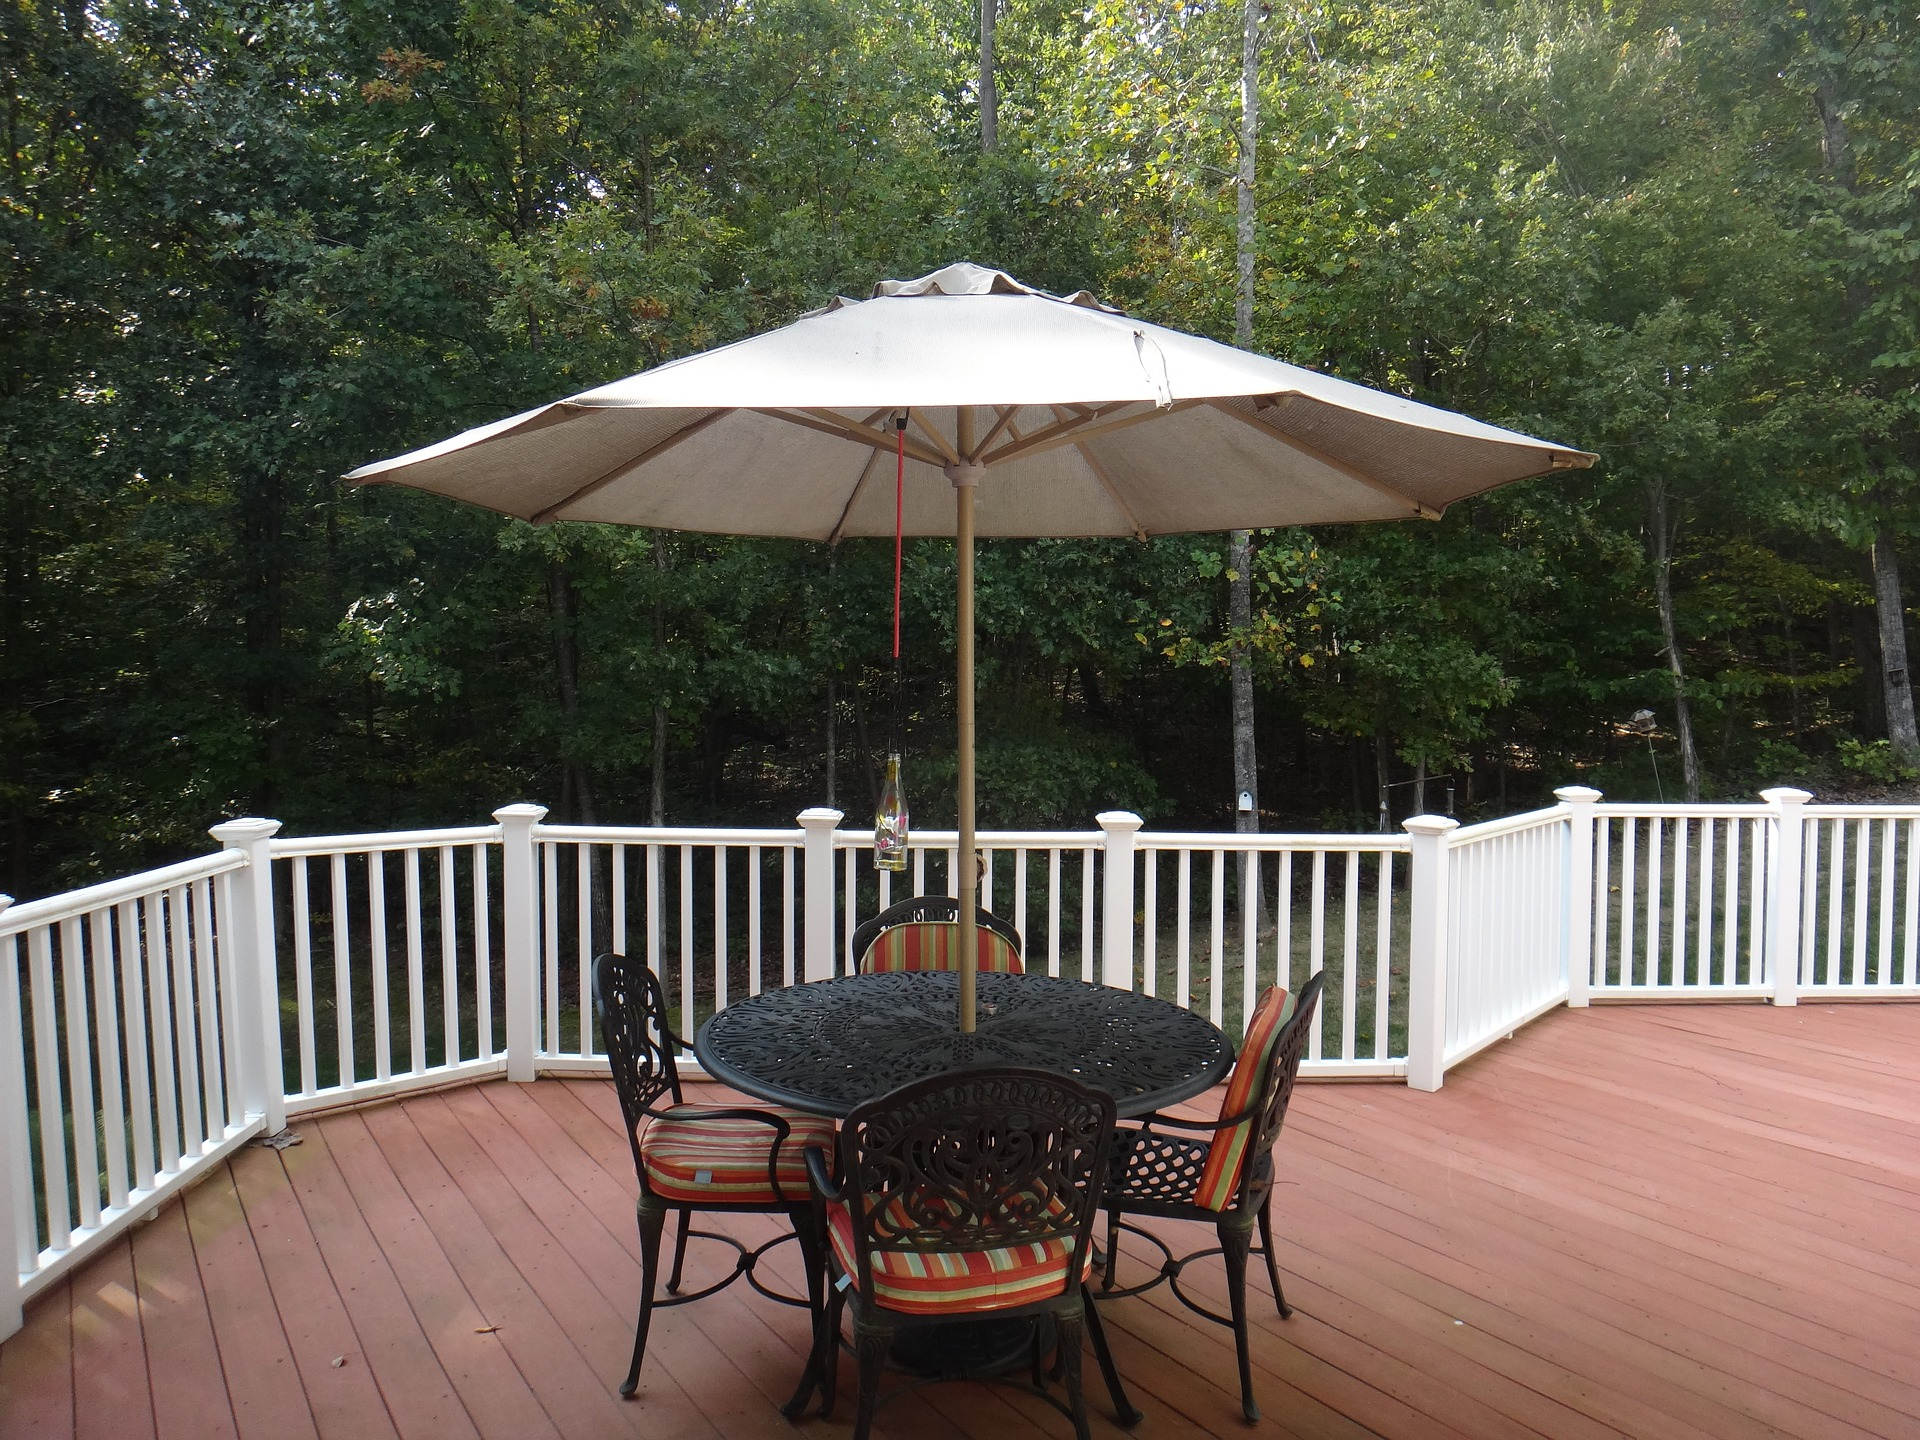 patios or builders deck patio northern wagner and inc virginia porches rear lensis edited decks